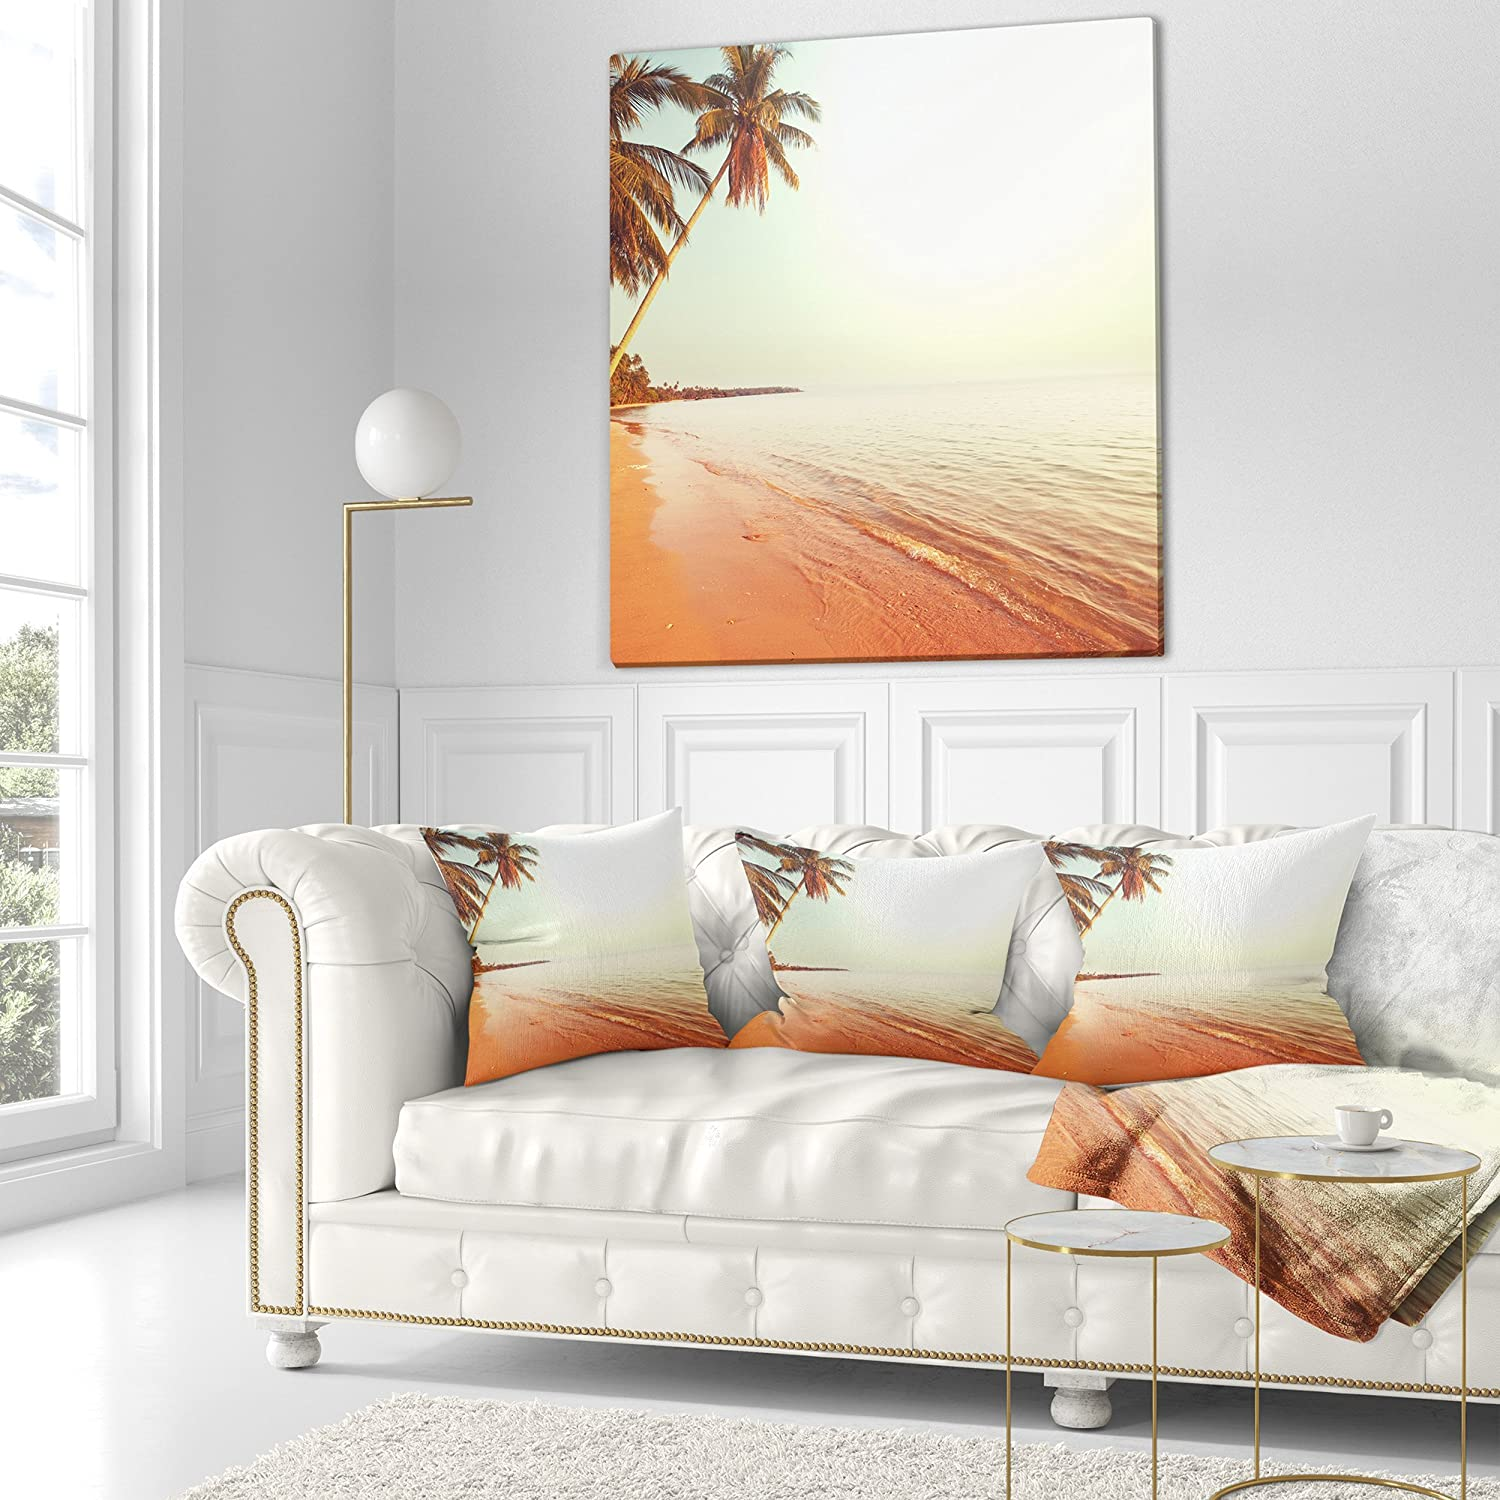 x 18 in Sofa Throw Pillow 18 in in Designart CU12404-18-18 Serene Huge Palm Trees Beach Photo Cushion Cover for Living Room